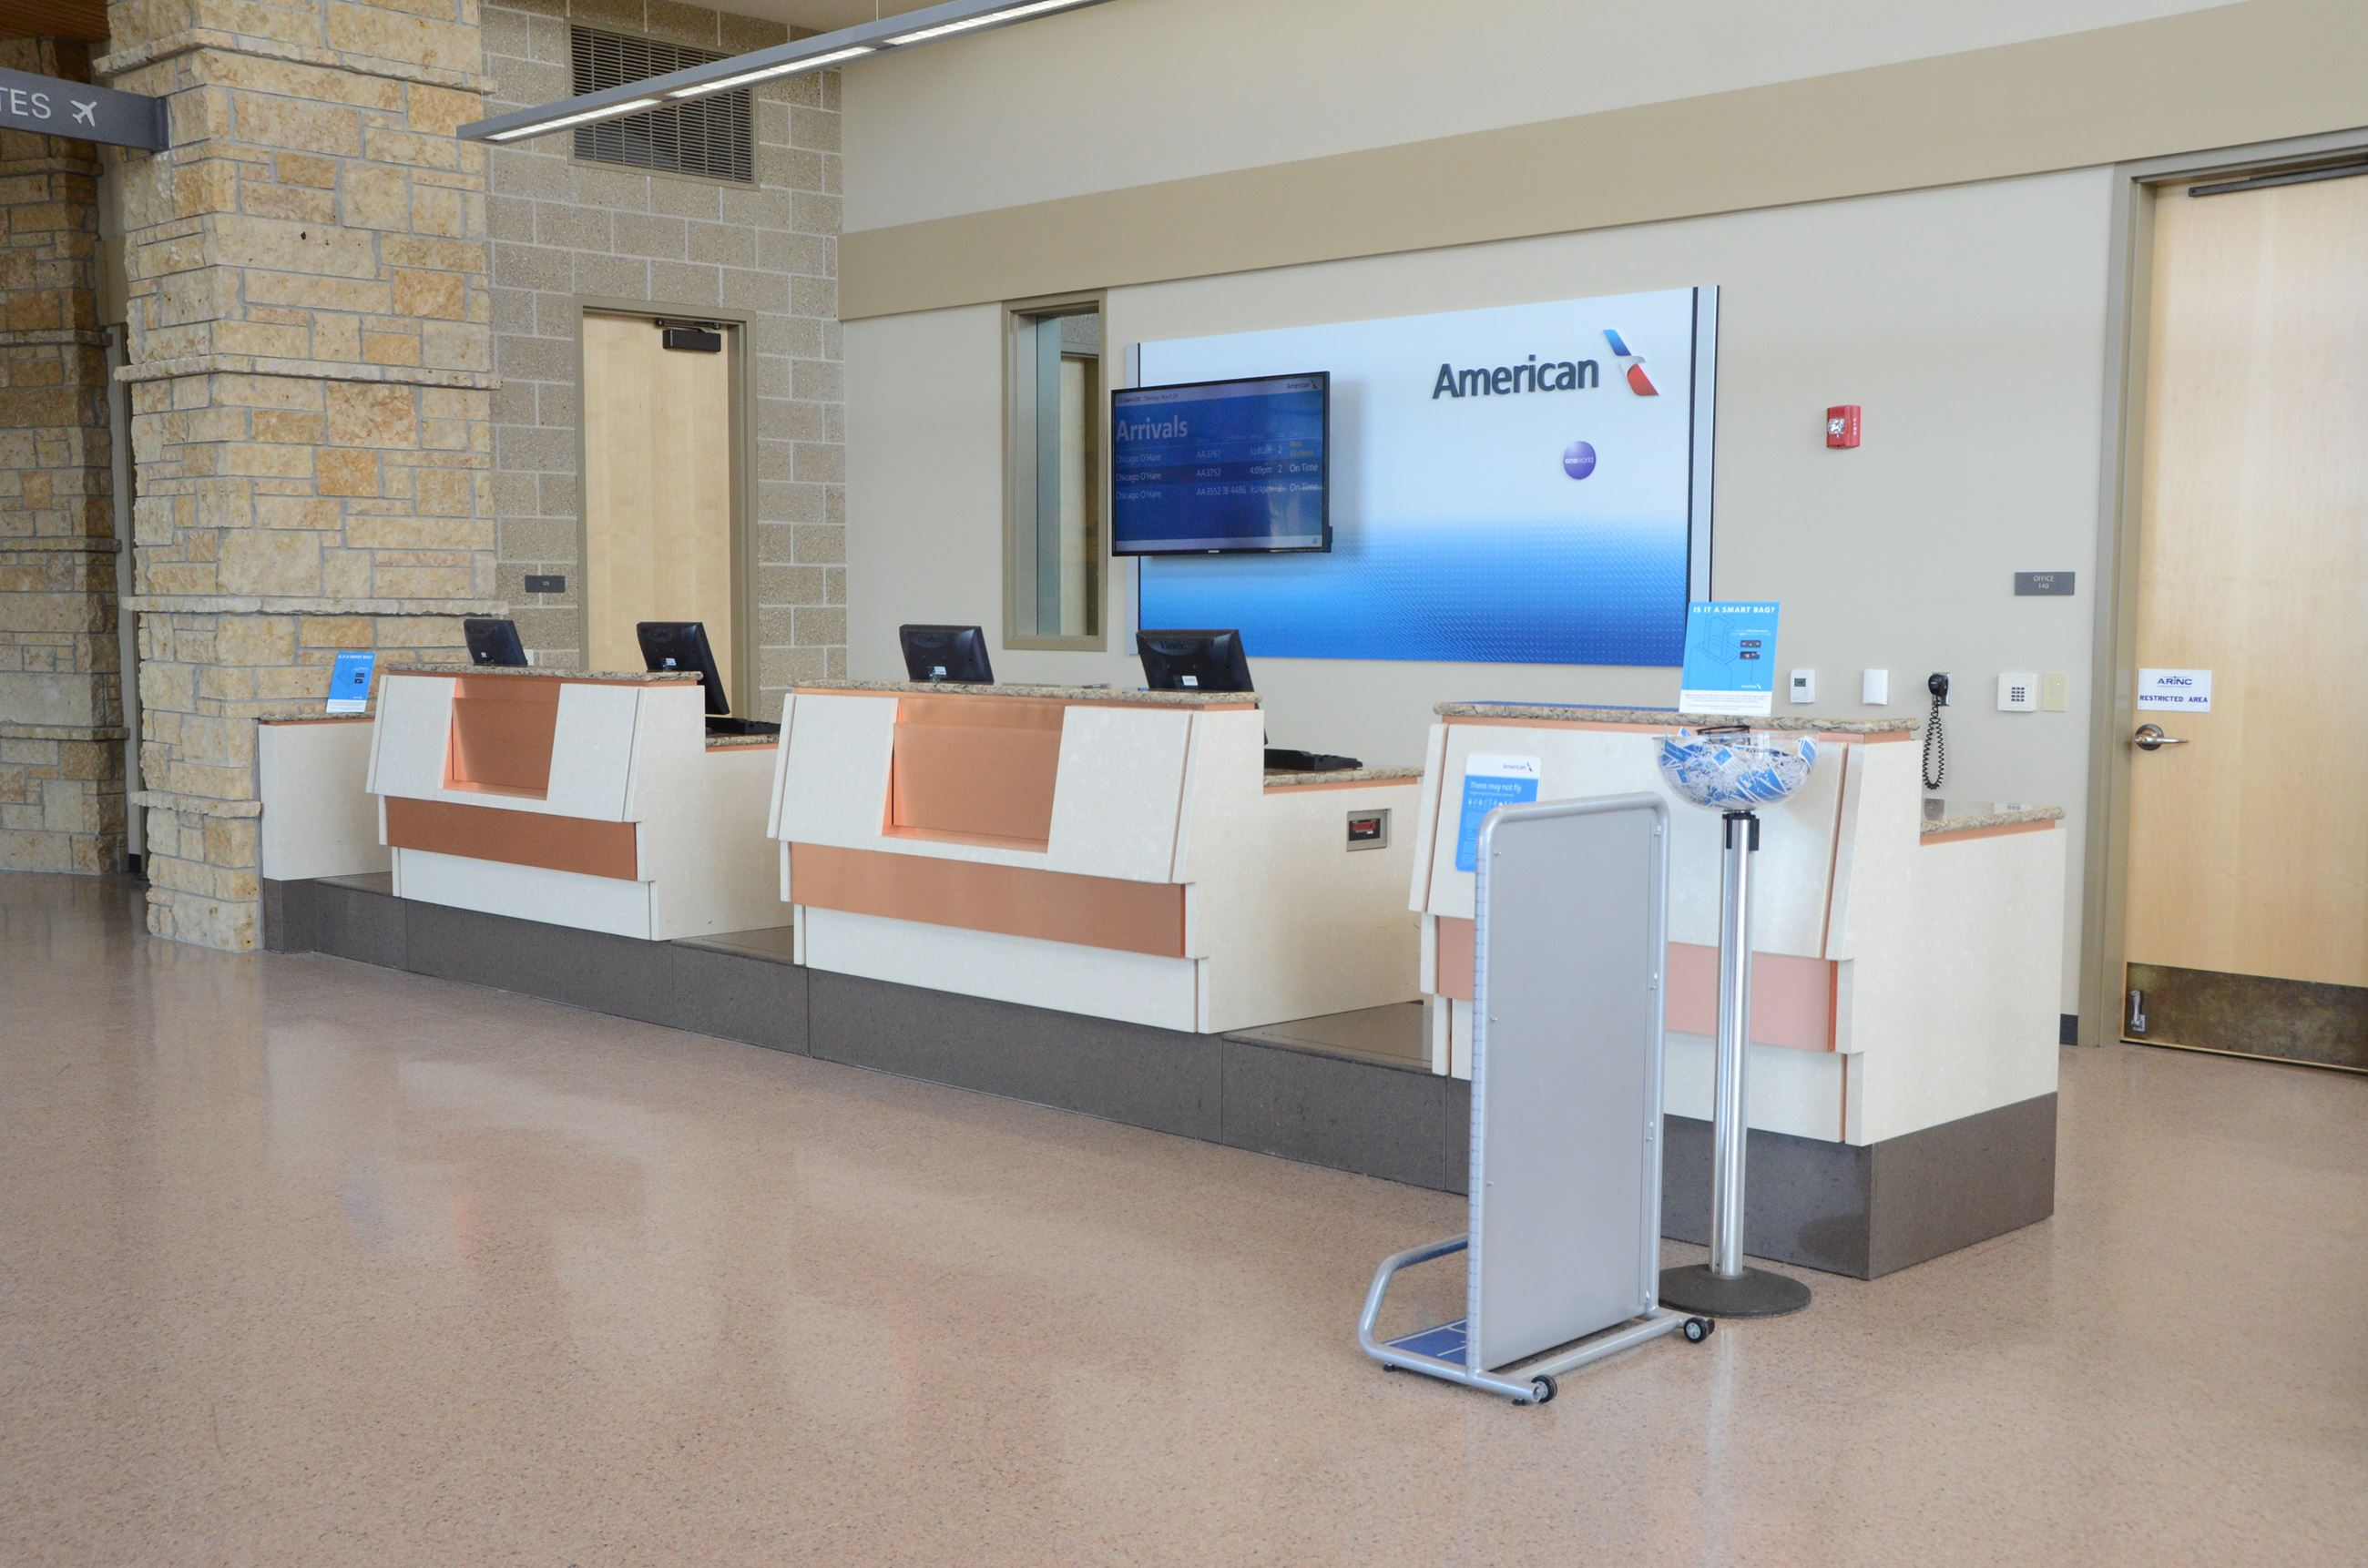 American Eagle Ticket Counter